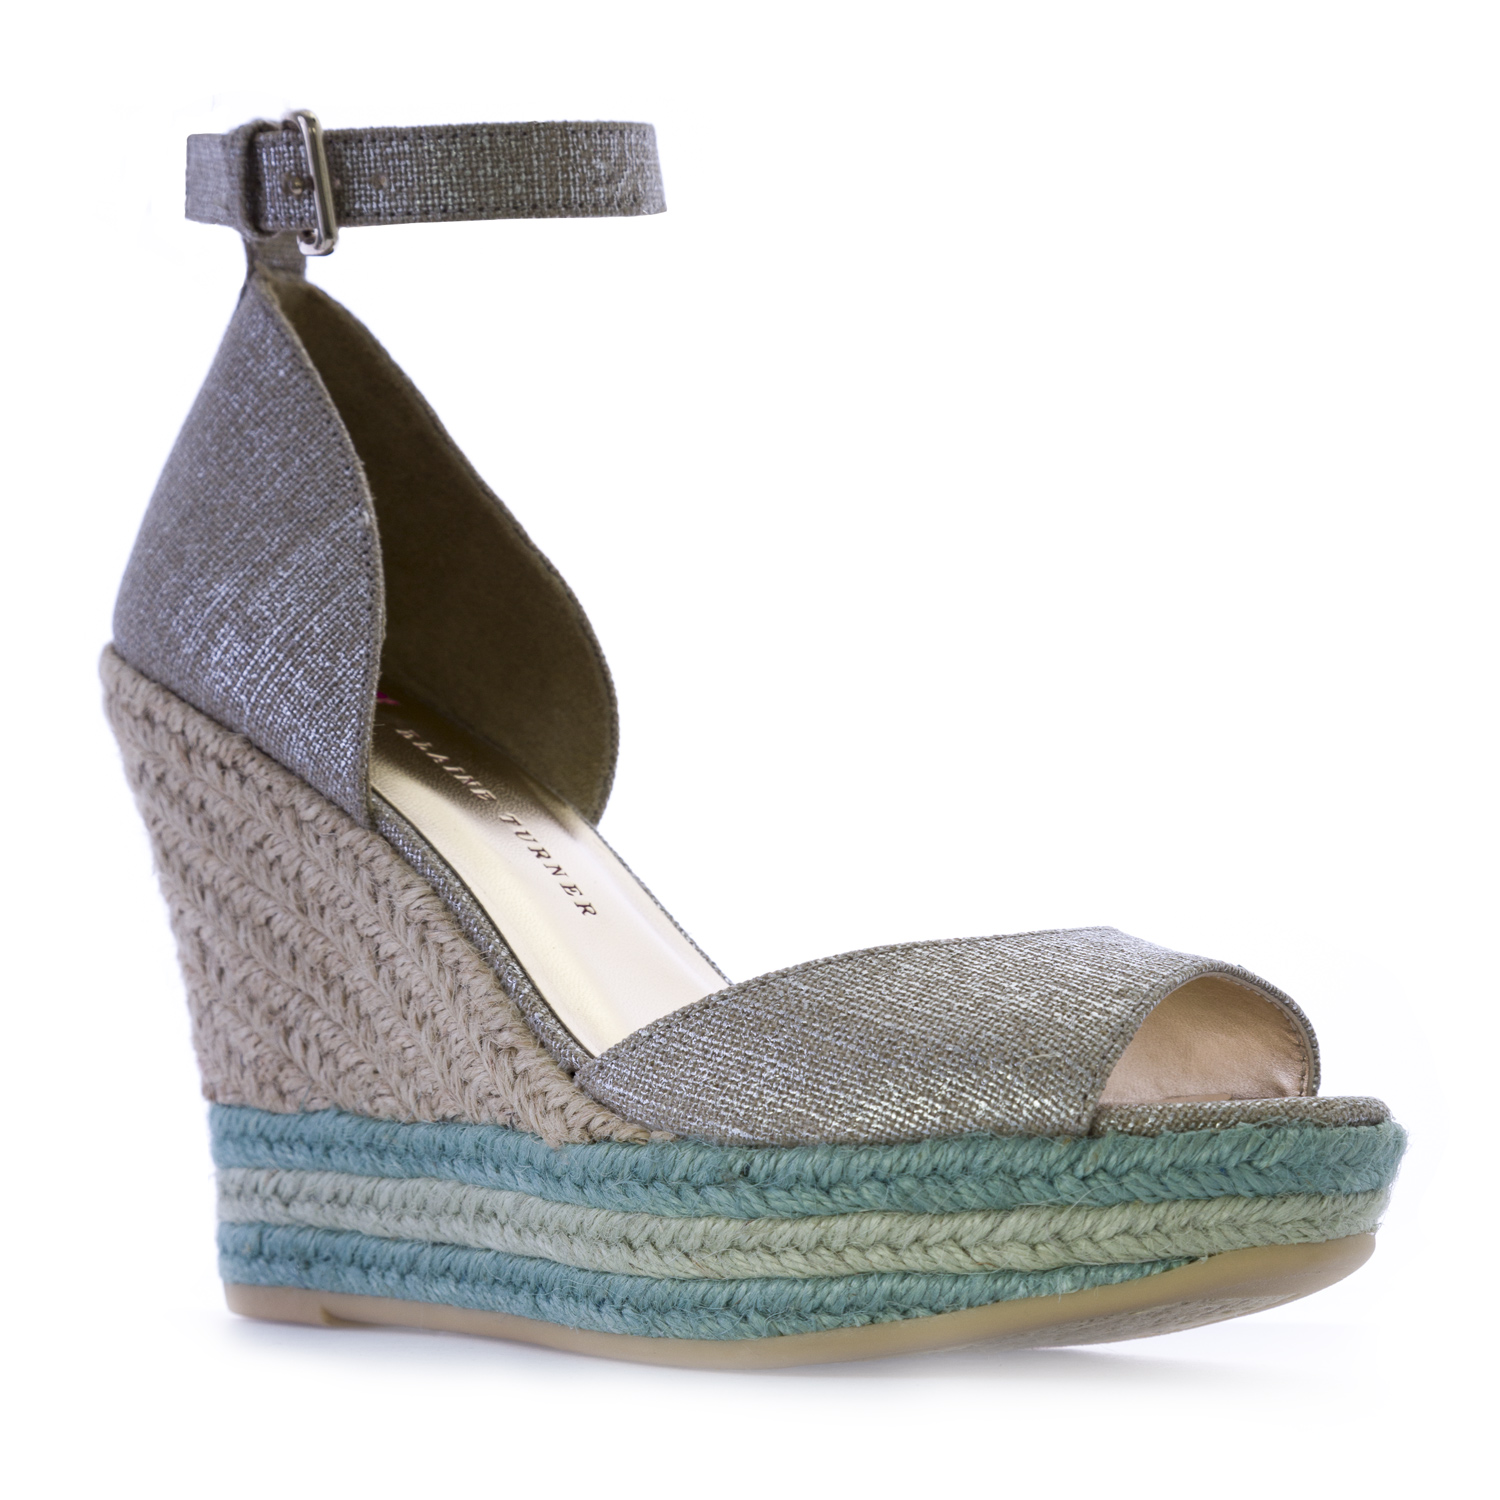 ELAINE TURNER Arial Wedge Sandals